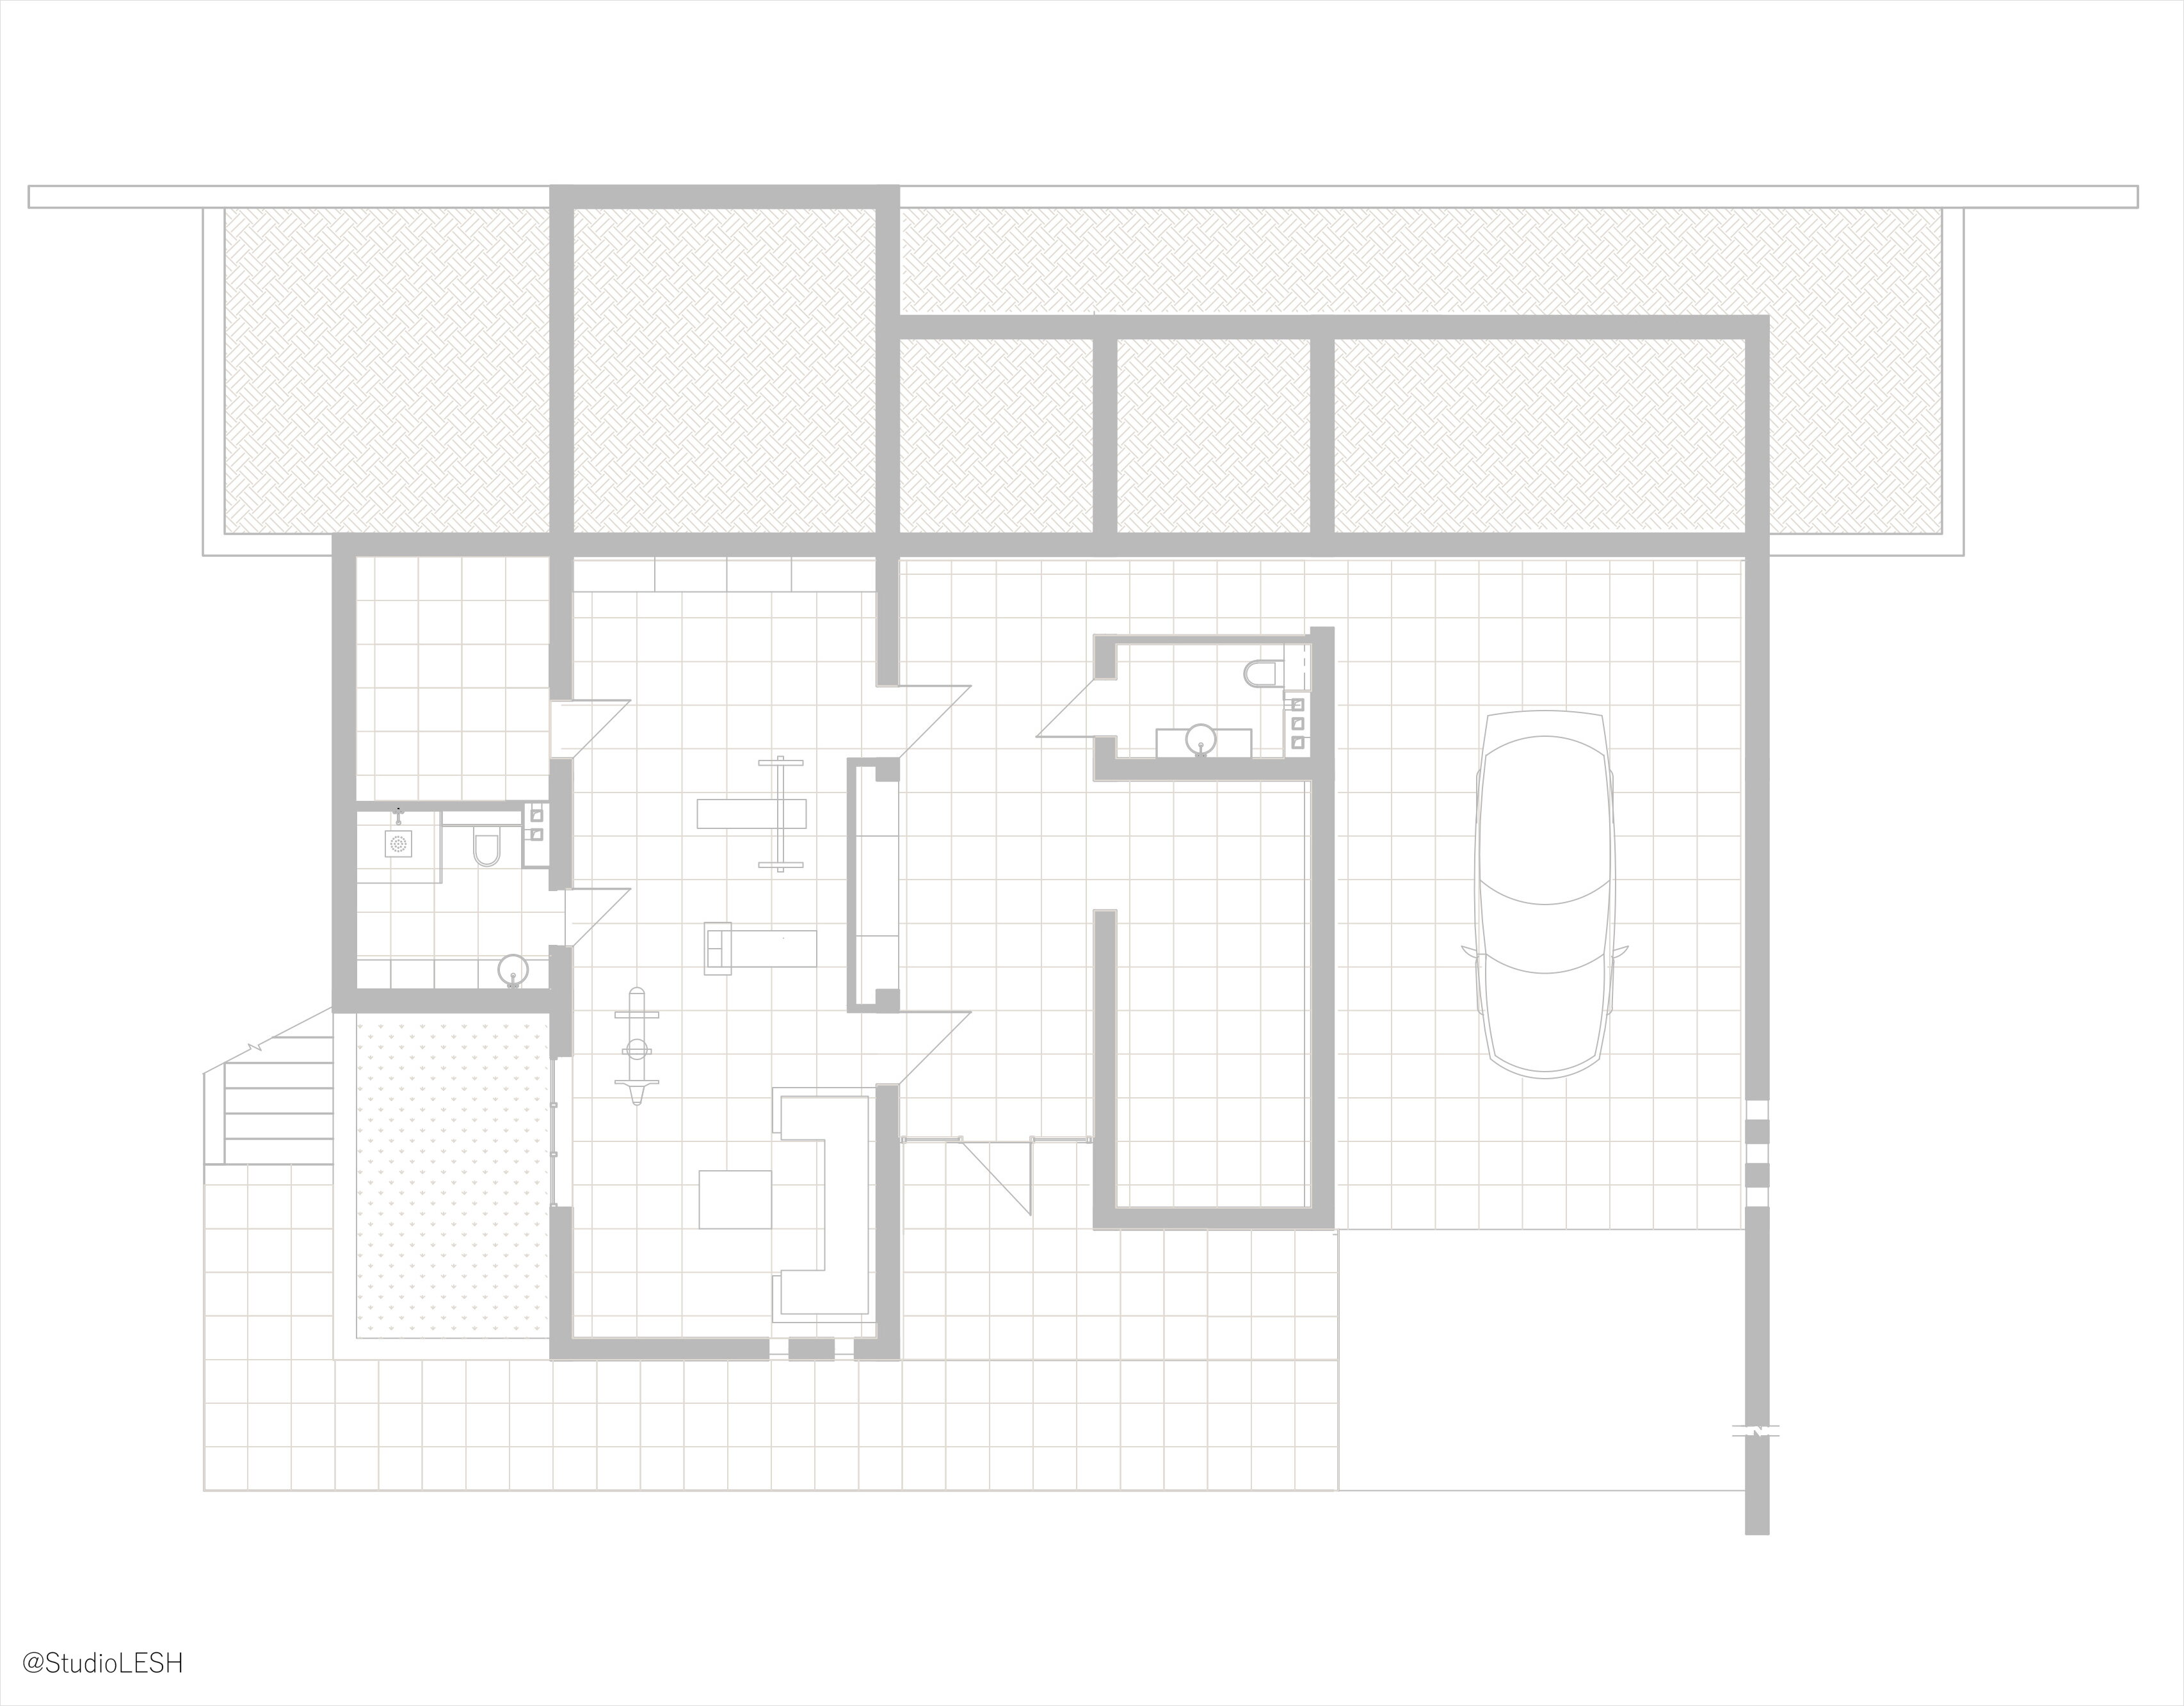 The layout of the house in Sochi. First floor.